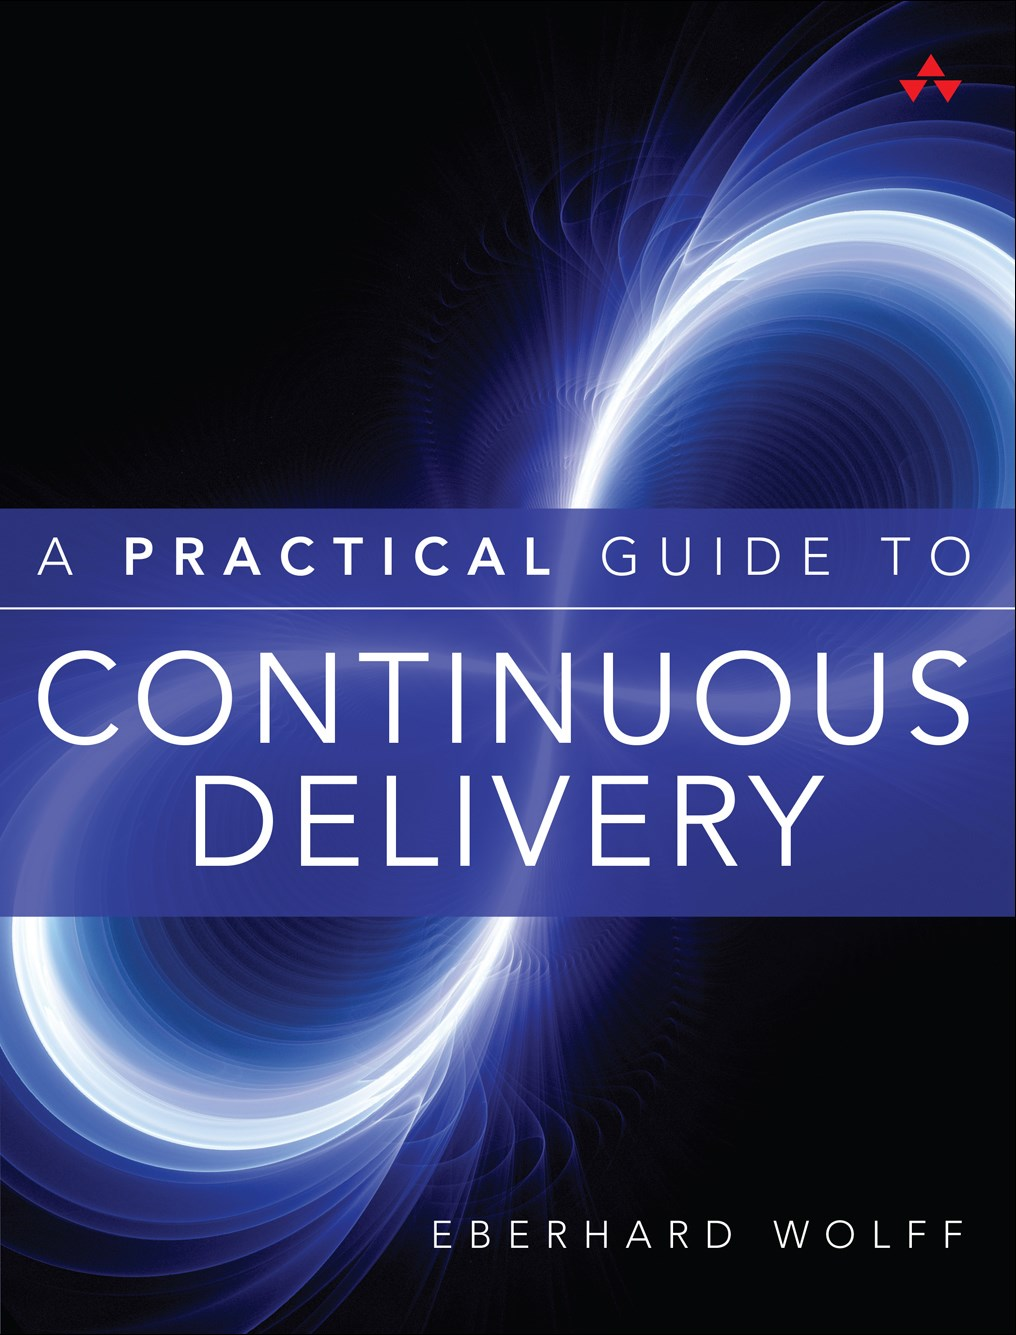 Practical Guide to Continuous Delivery, A | InformIT